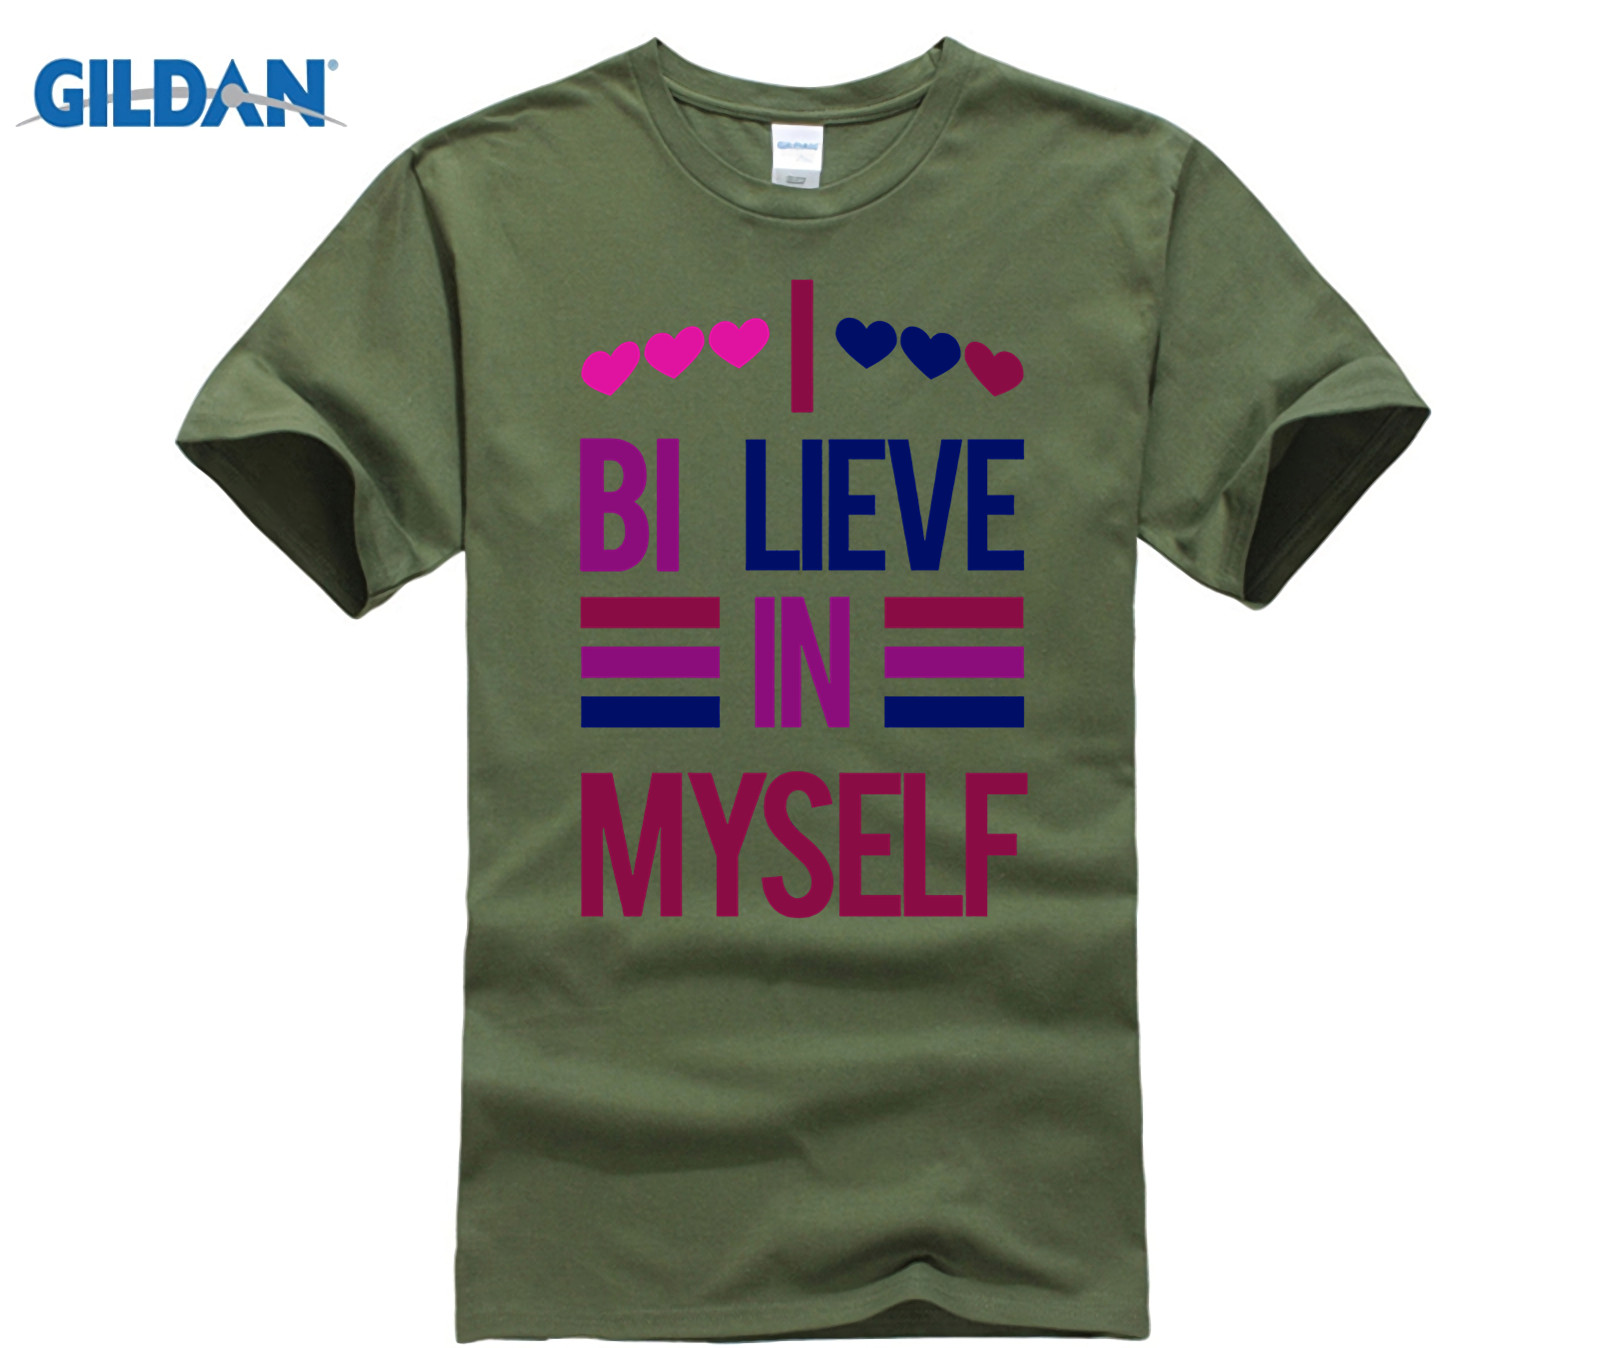 <font><b>Bisexual</b></font> <font><b>Pride</b></font> <font><b>Shirt</b></font> I Bi-Lieve in Myself T-<font><b>Shirt</b></font> image